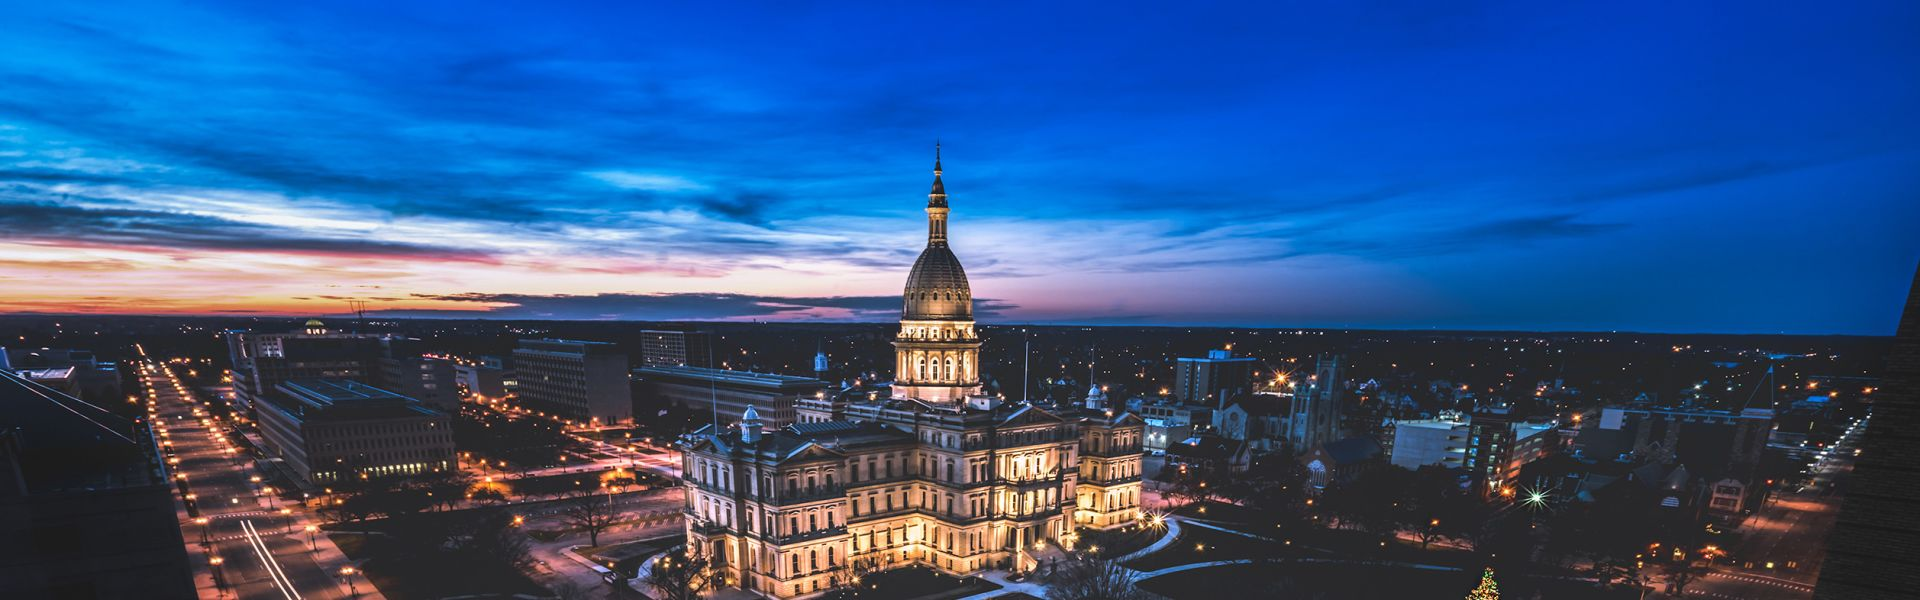 Top 5 Downtown Lansing Attractions Things to do in downtown